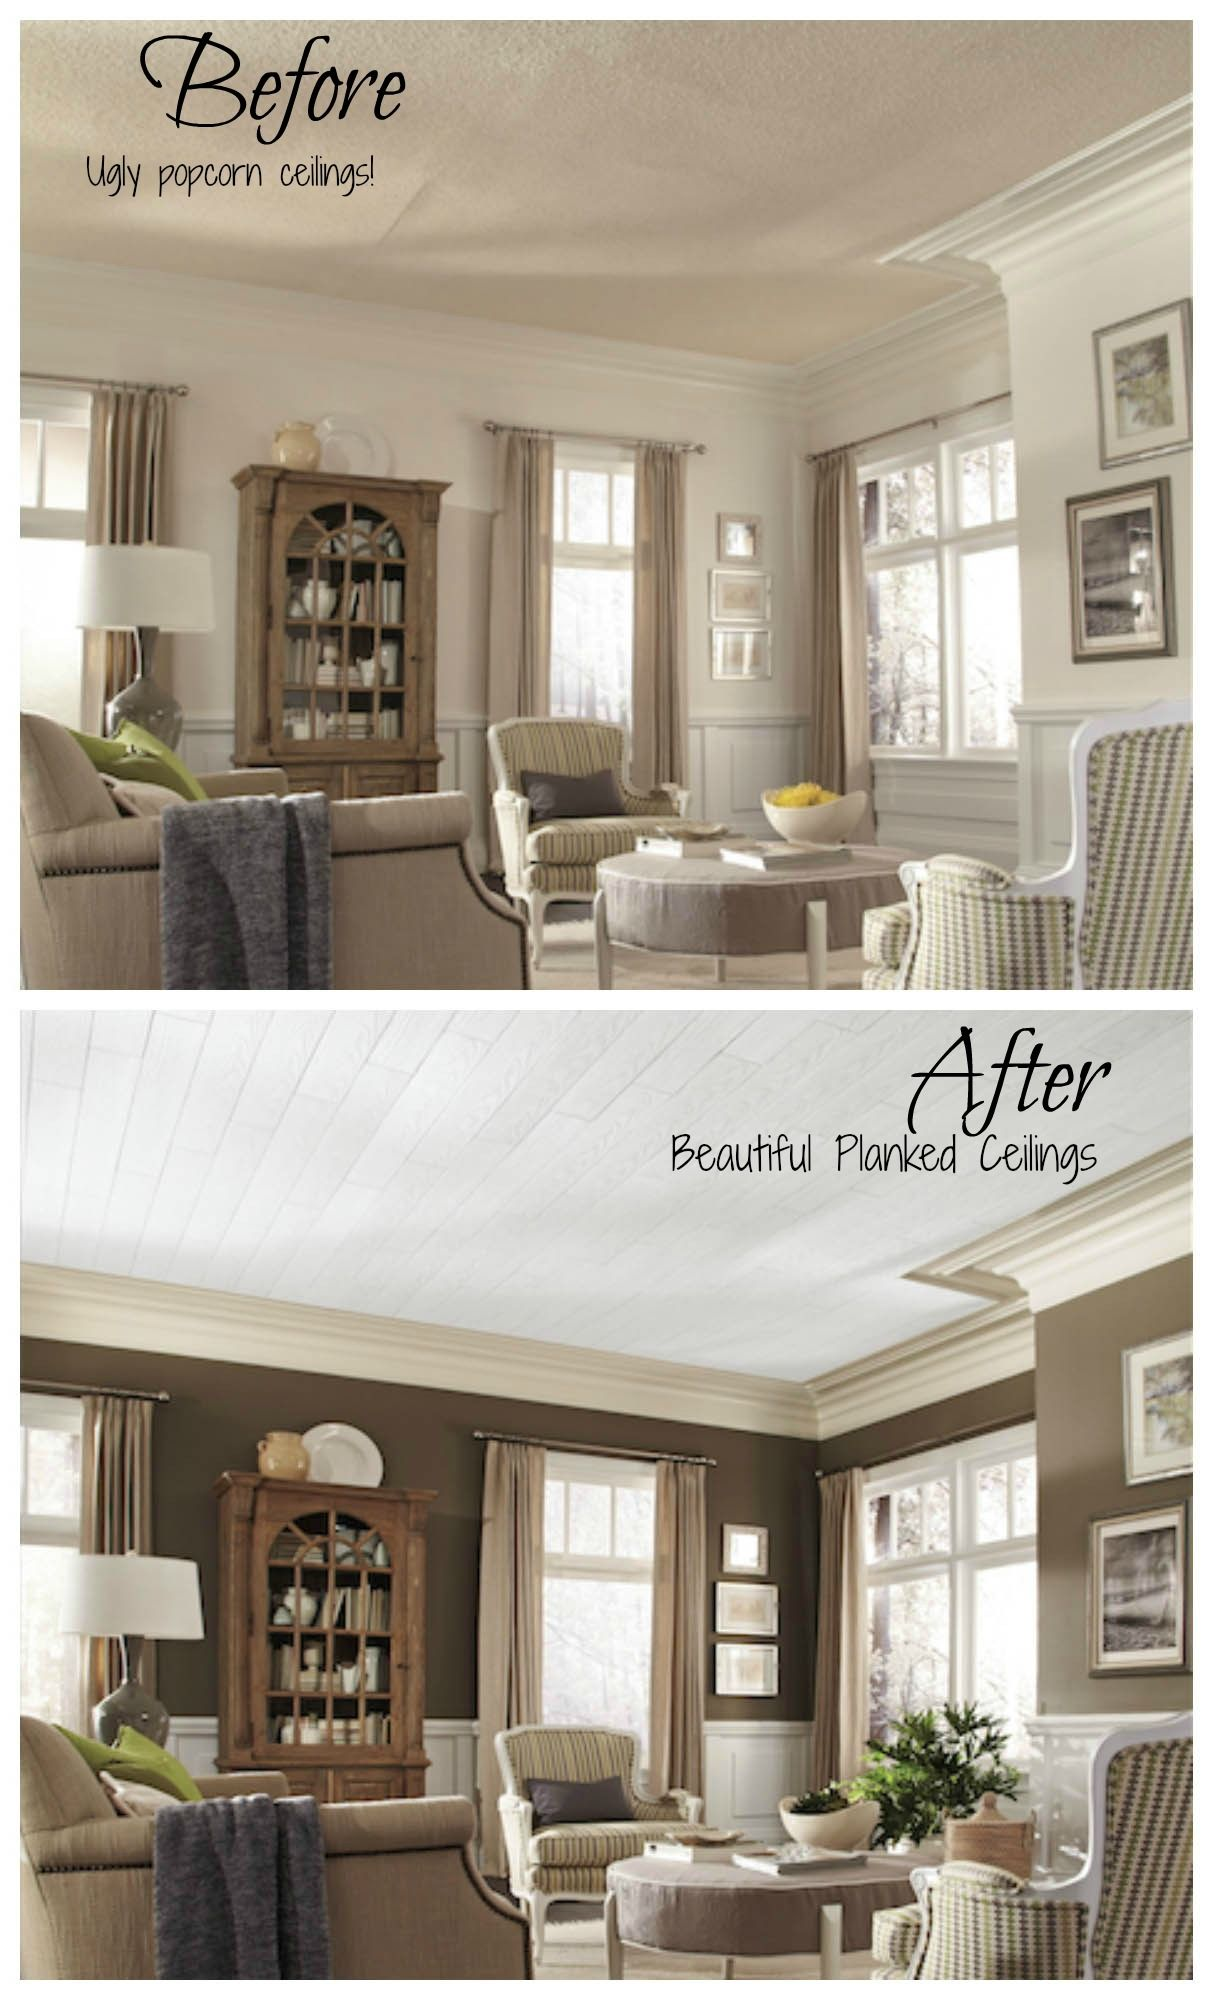 No more popcorn ceilings! Armstrong planked ceiling